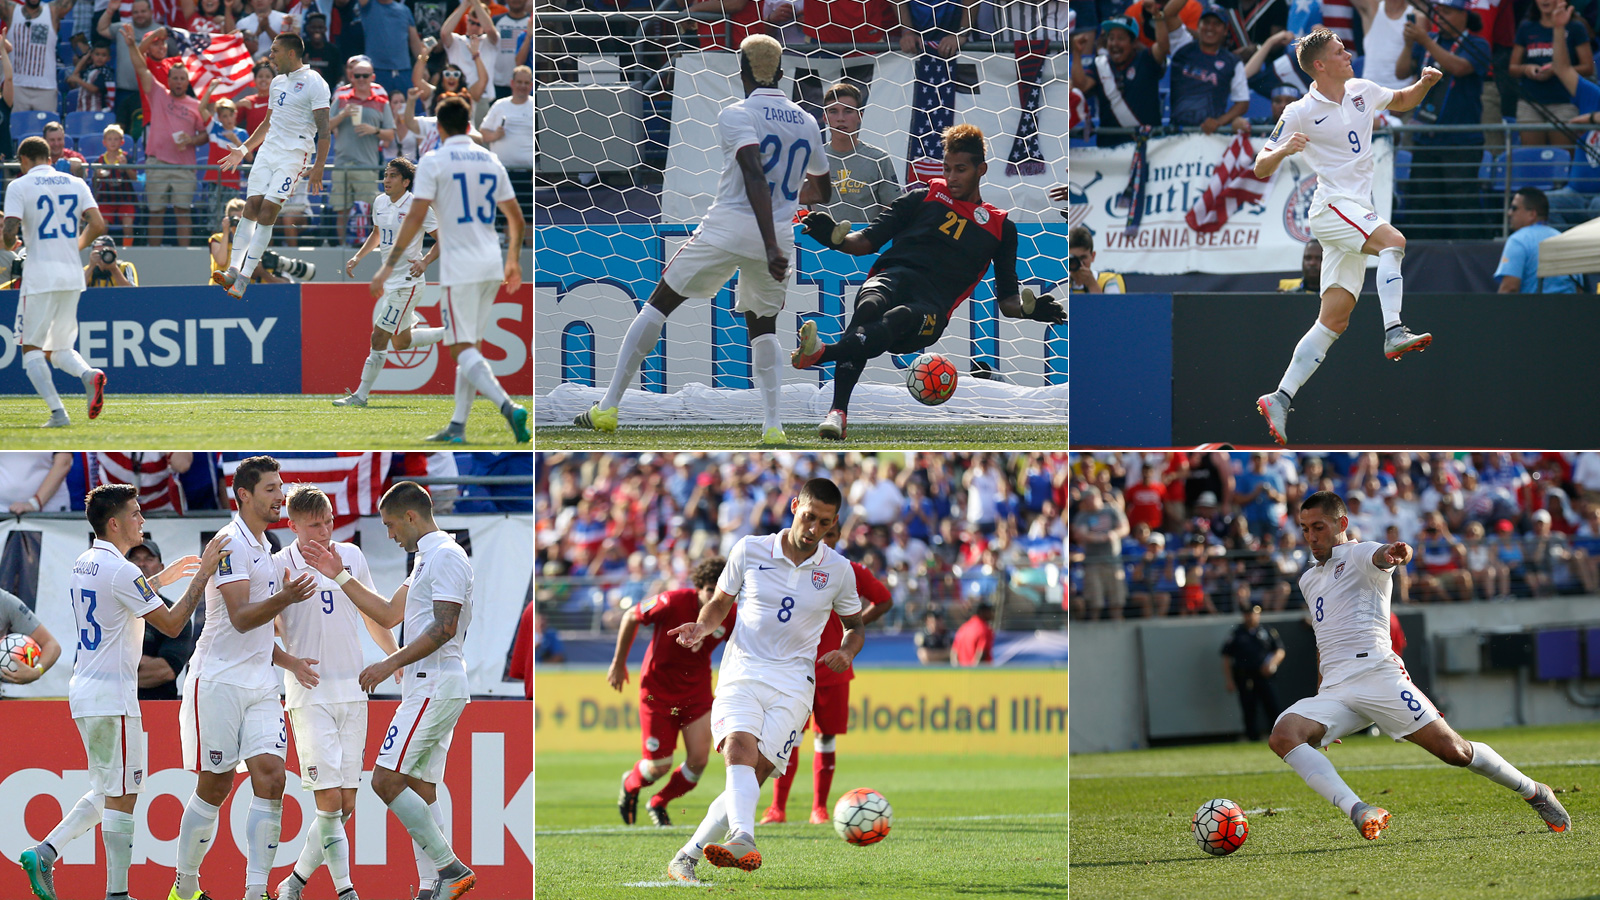 The U.S. men put on a clinic against an overmatched Cuba in the Gold Cup quarterfinals, with Clint Dempsey's hat trick leading the way in a 6-0 rout. Gyasi Zardes, Aron Johannsson and Omar Gonzalez also scored.